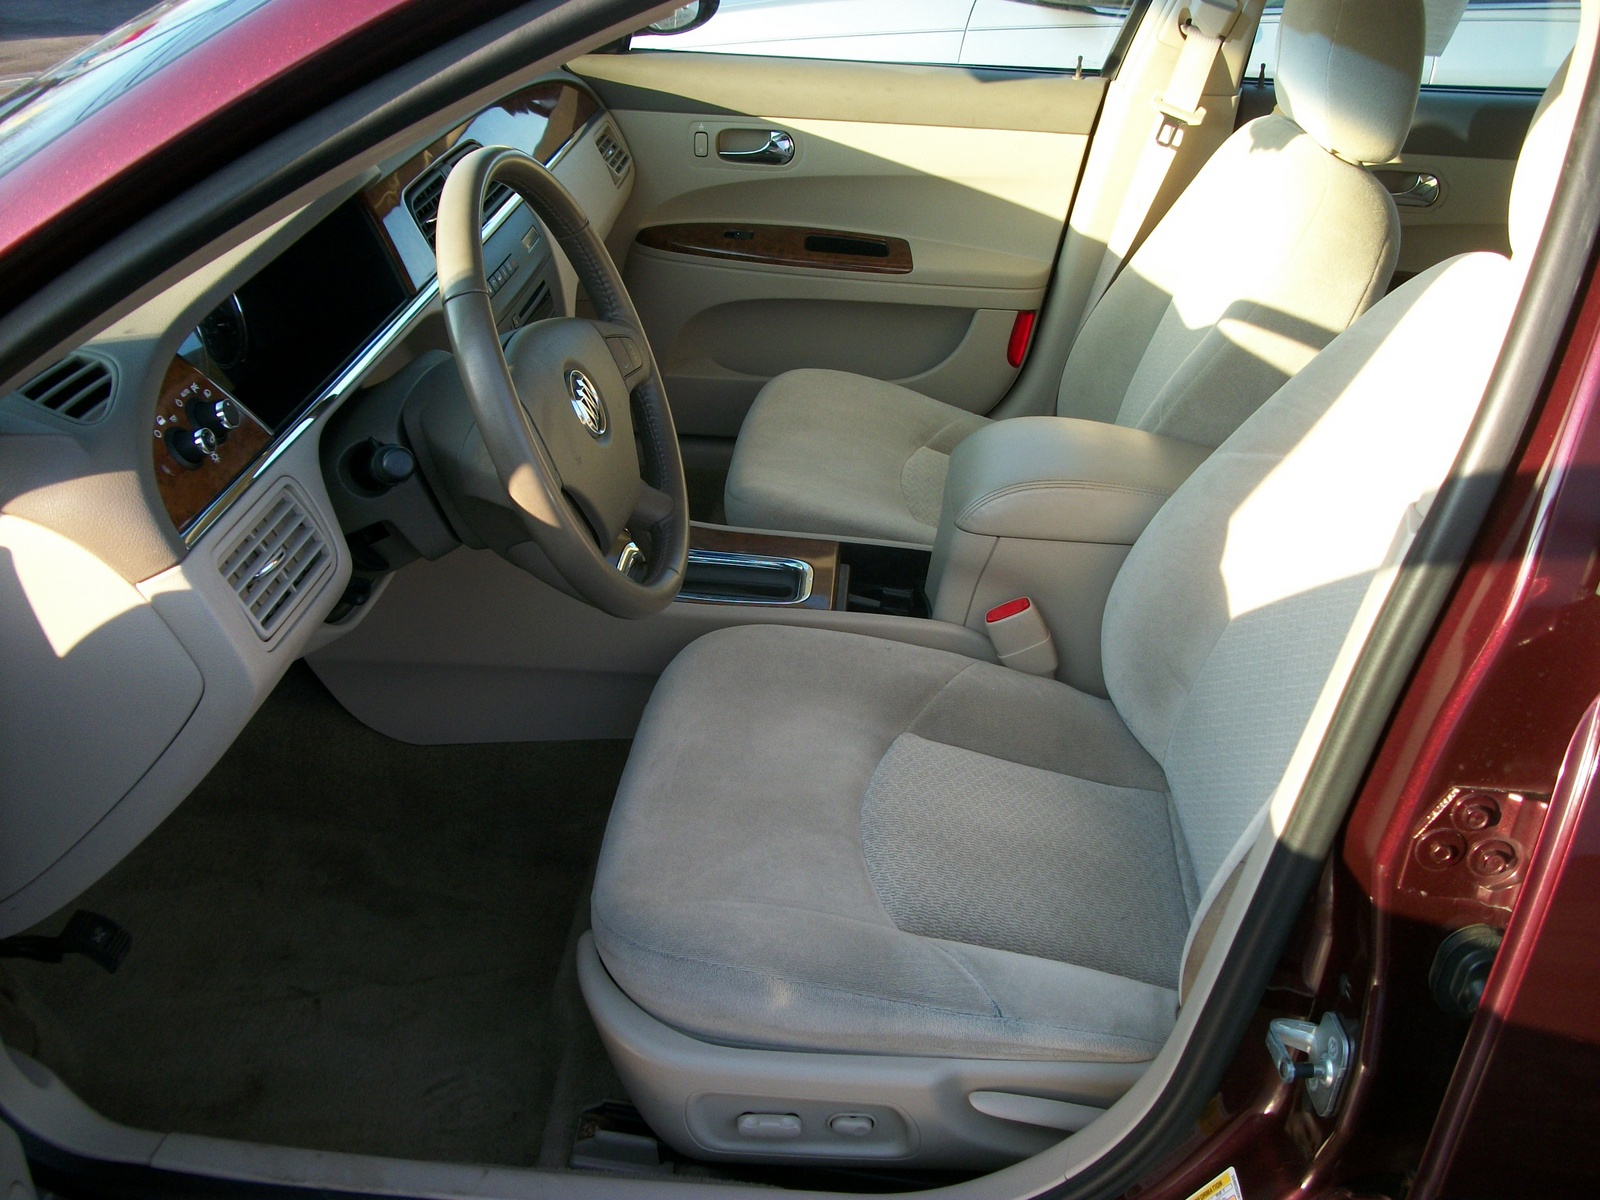 Buick Lacrosse Cx Pic on 2007 Buick Lacrosse Cx Interior